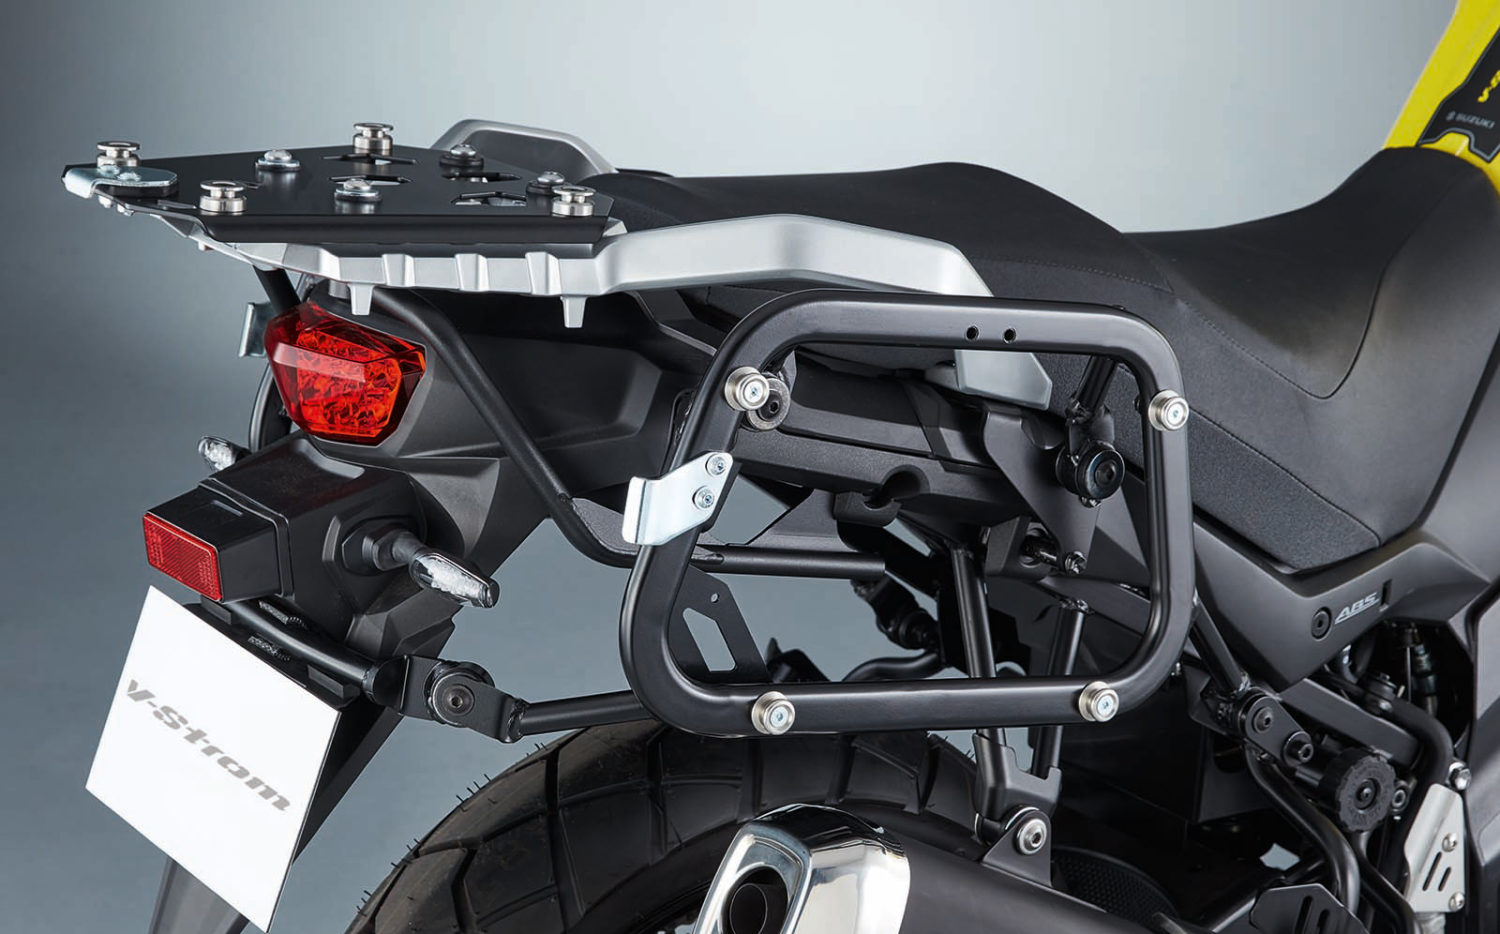 V-Strom 650 Sidecase Carrier Kit